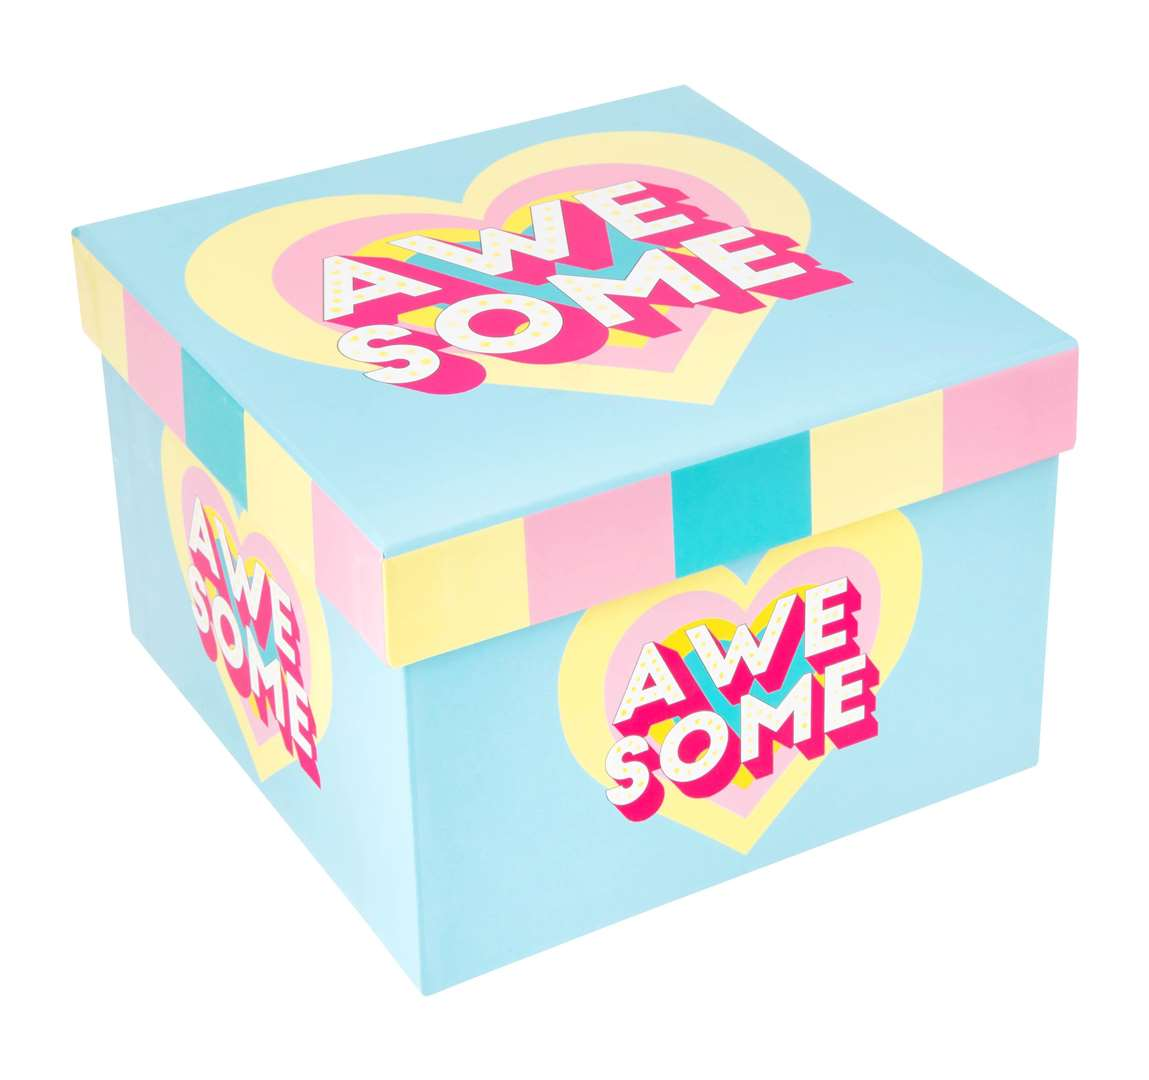 Fill it with sweets, stickers or even a pack of Match Attax cards! This £1 box makes the possibilities endless.